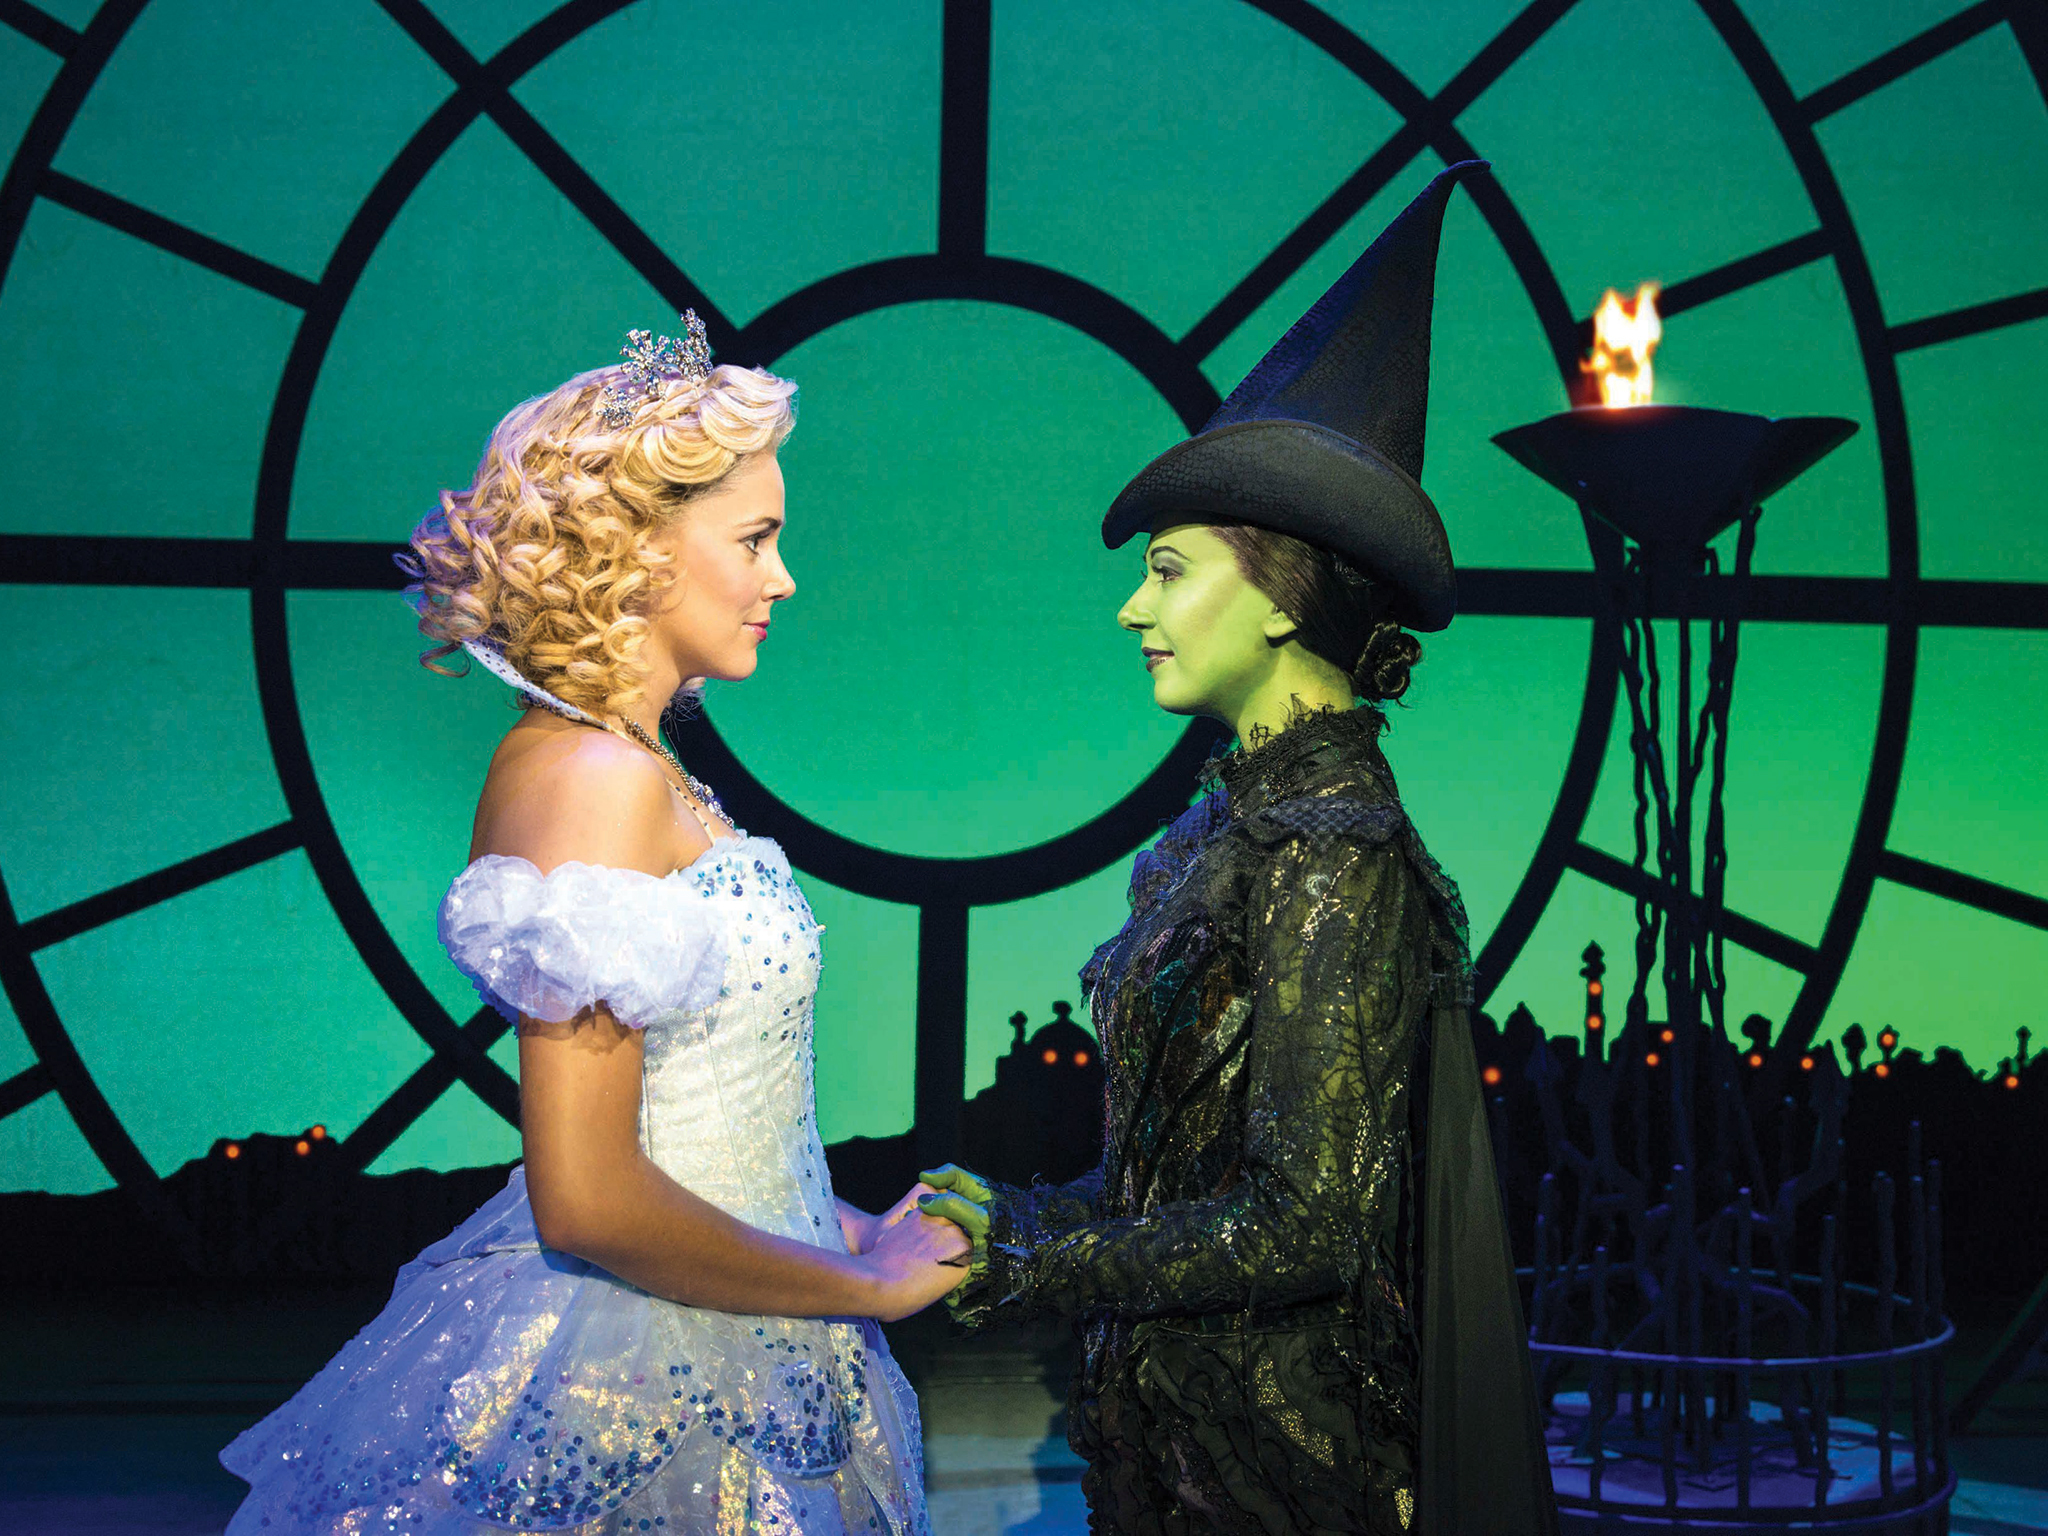 Interview: Wicked stars Jacqueline Hughes and Carly Anderson on the musical's enduring popularity